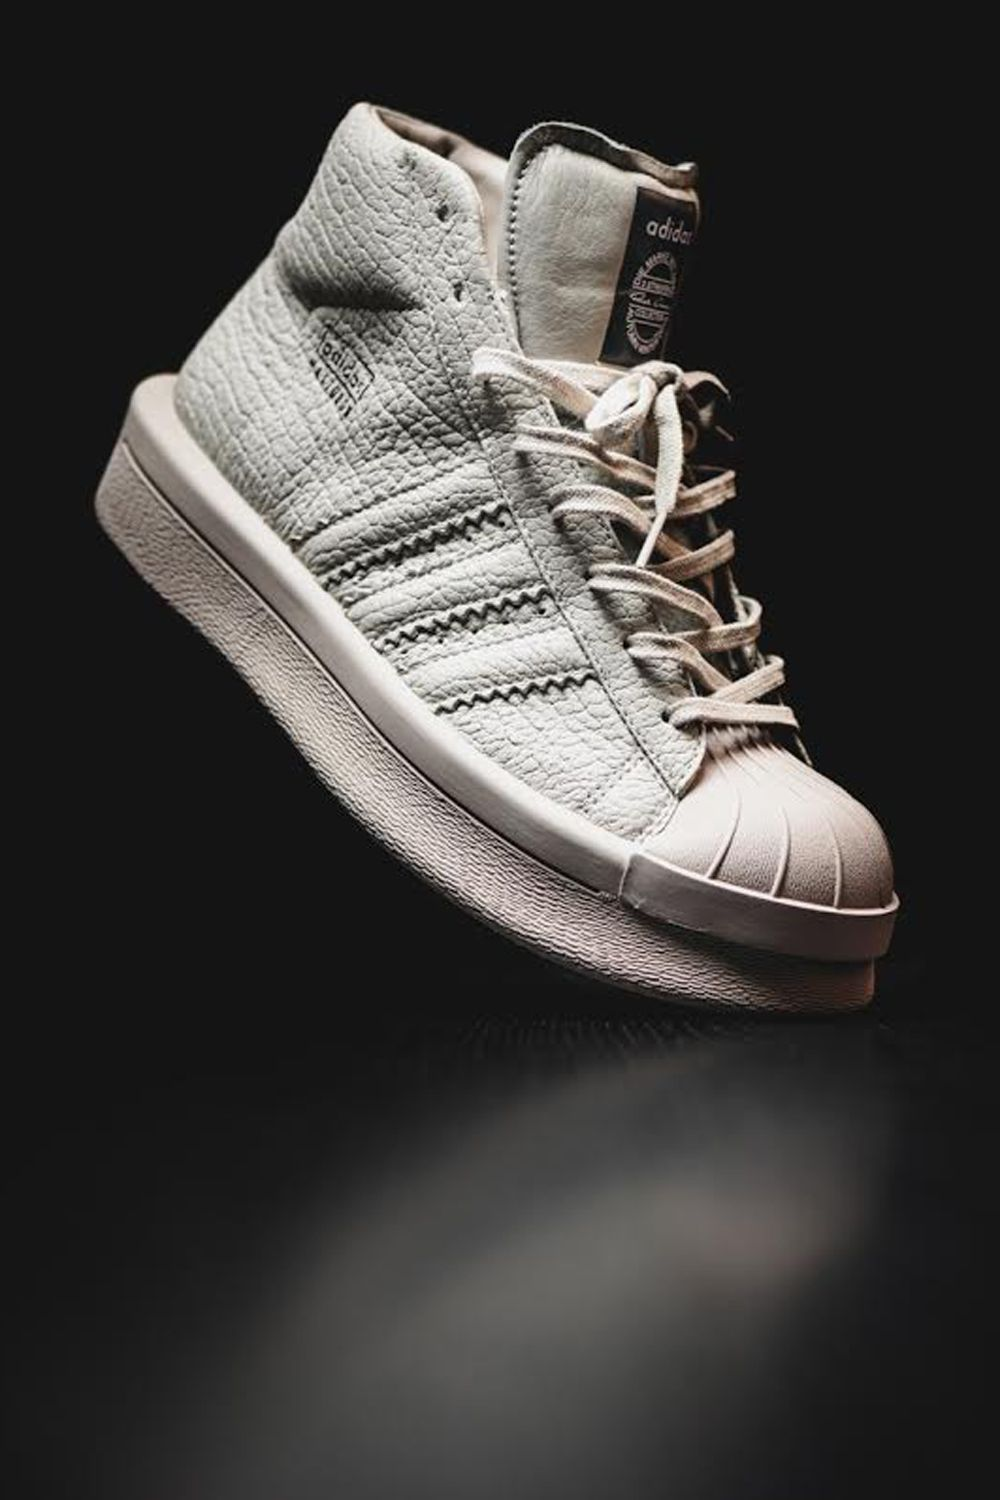 50+ Best Sneakers of 2016 These Are The Coolest Shoes of 2016